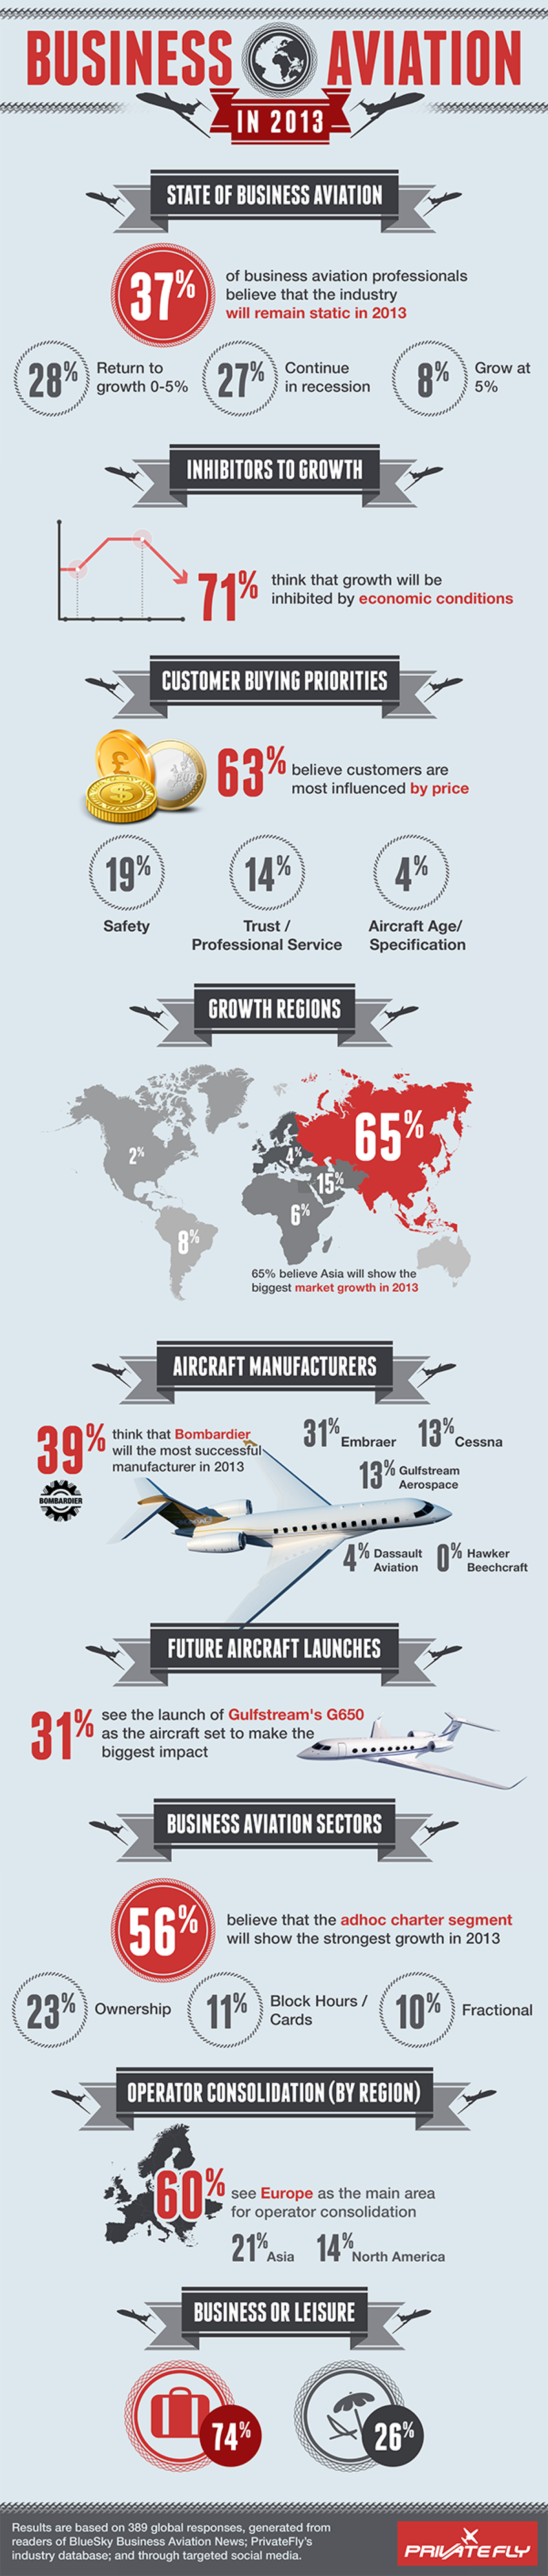 Business Aviation in 2013 Infographic